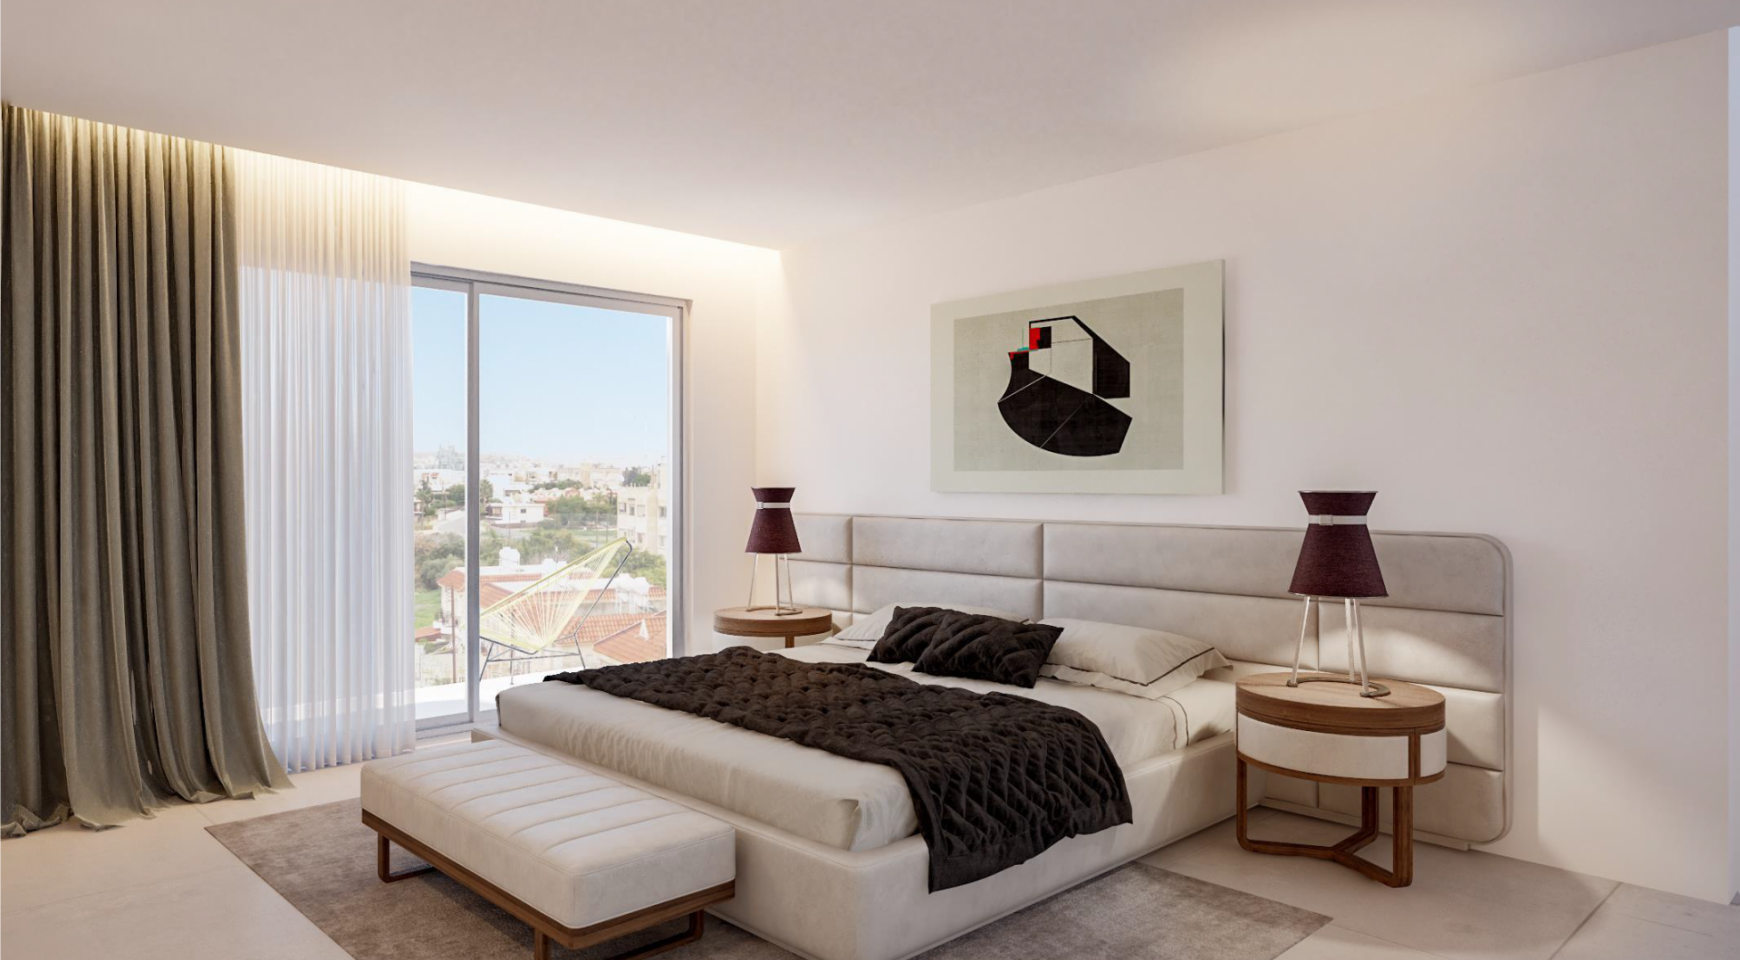 Contemporary 2 Bedroom Apartment in a New Complex - 11